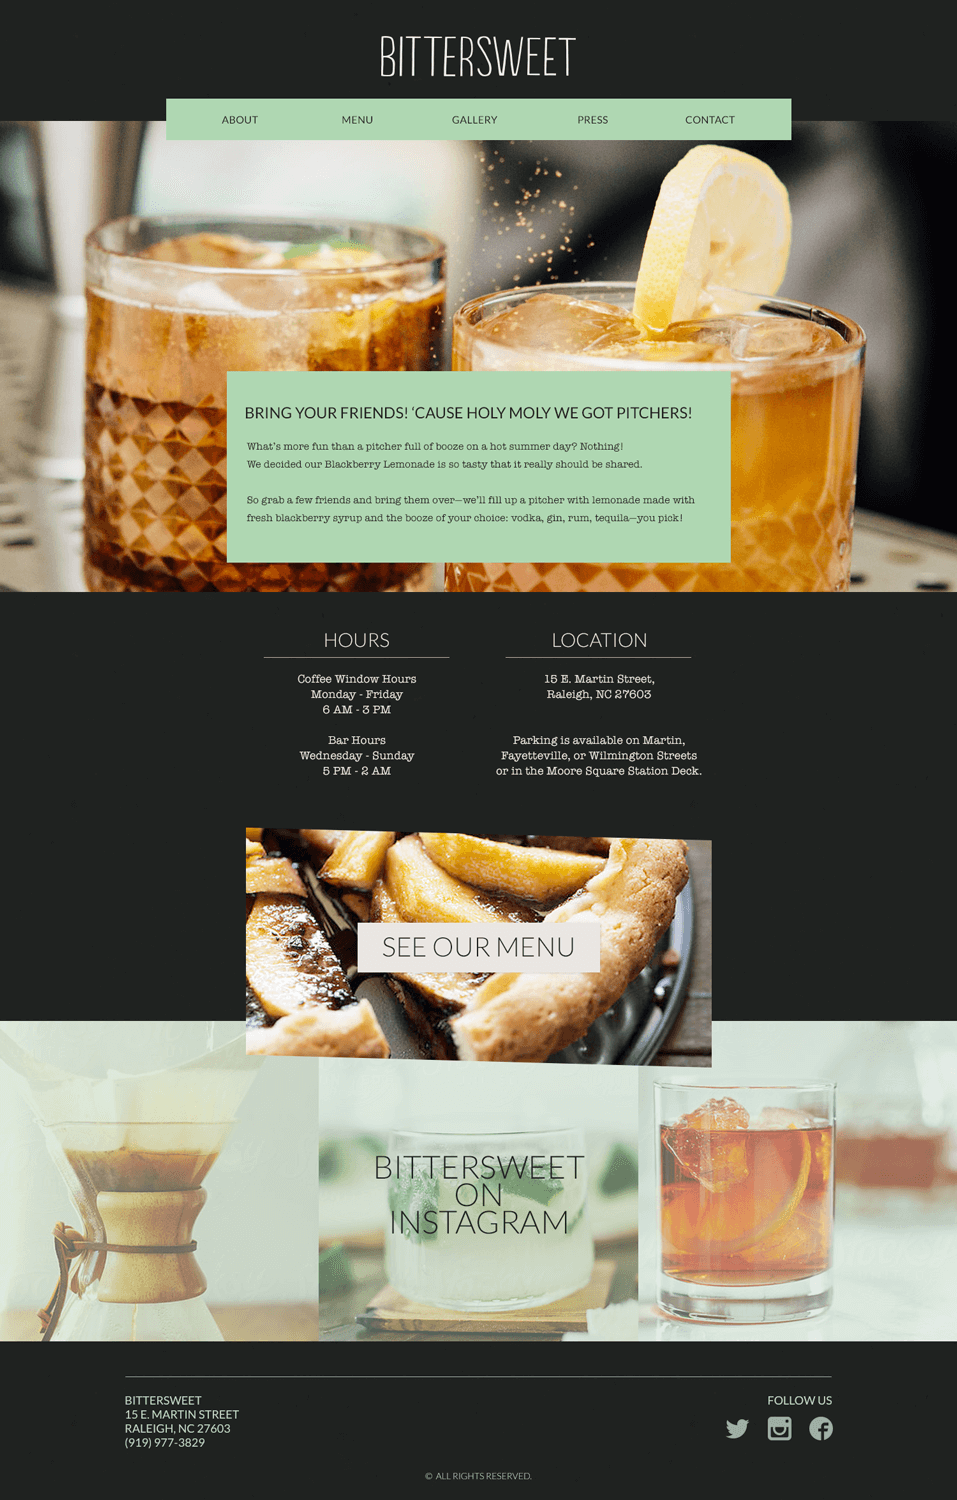 """Web Design - The website for Bittersweet was an important part of the face of their business. It needed to be informational and showcase their delicious cocktails and desserts. Bold strips of color hold important features, as I wanted to carry consistency of the slightly off-kilter, handmade vibe of the brand into the web presence. Event features on the top of the homepage and a large Instagram feed were essential. Secondary to that and sandwiched in-between are the two most frequently asked questions when people called in: """"What are your hours?"""" and """"Where are you located?""""I developed this site in Wordpress so that it would be super easy for the client to go in and make content updates and add images. As we knew most people would be viewing the site on their phones, having a responsive site was of the utmost importance. I created their theme from scratch working in PHP, HTML, using Sass for styling."""